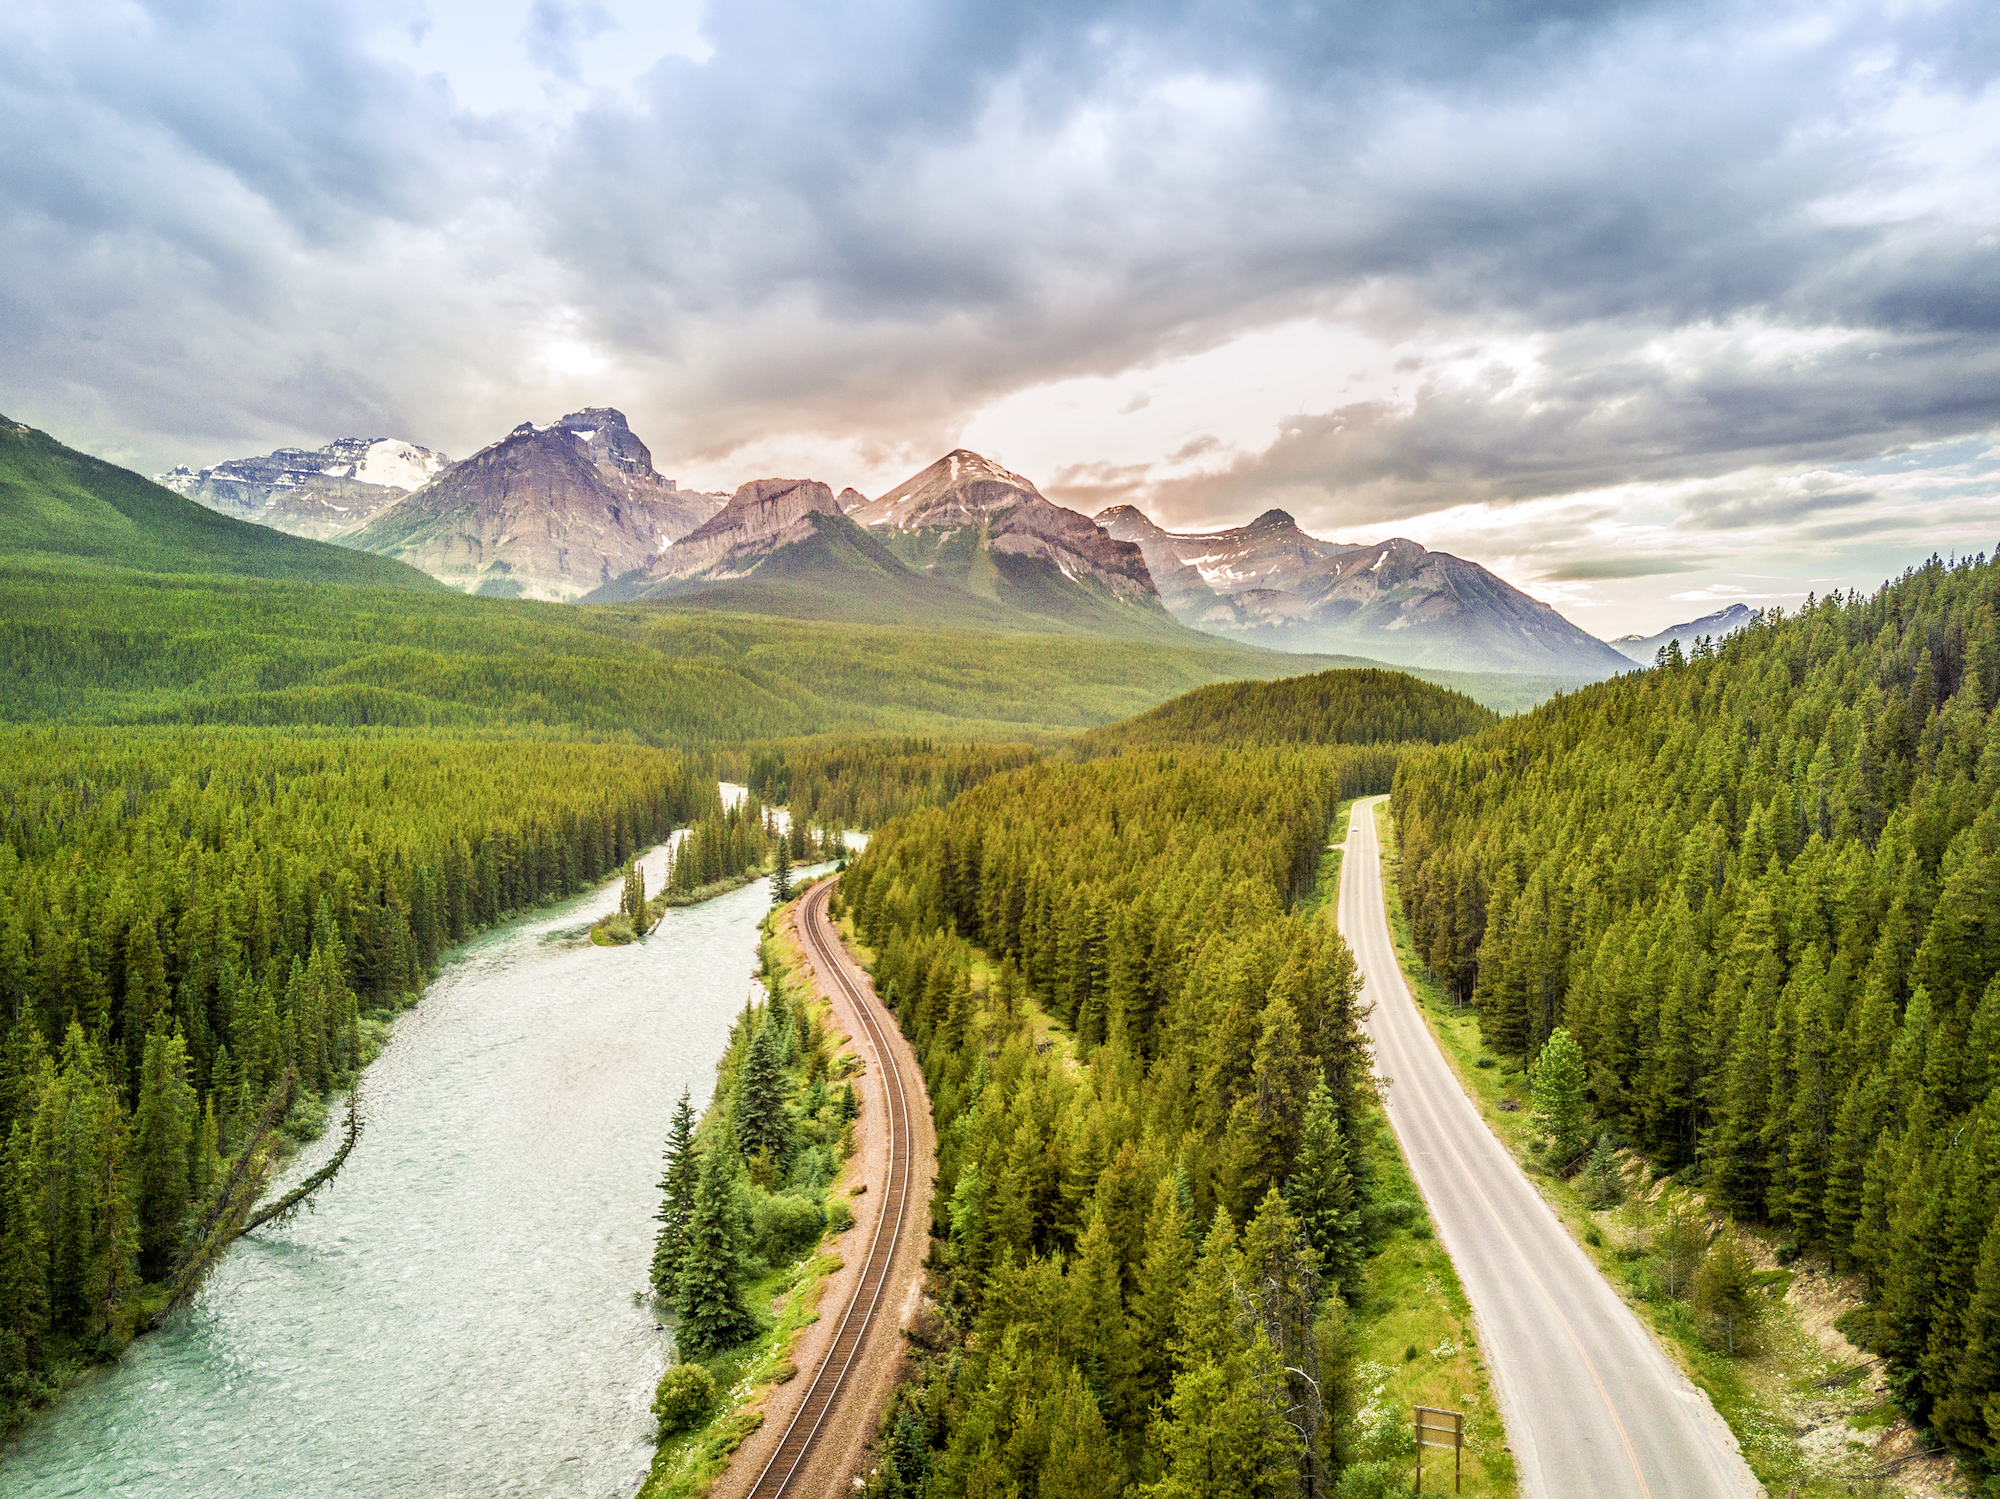 Words simply don't do Banff National Park justice...you just really have to experience it for yourself